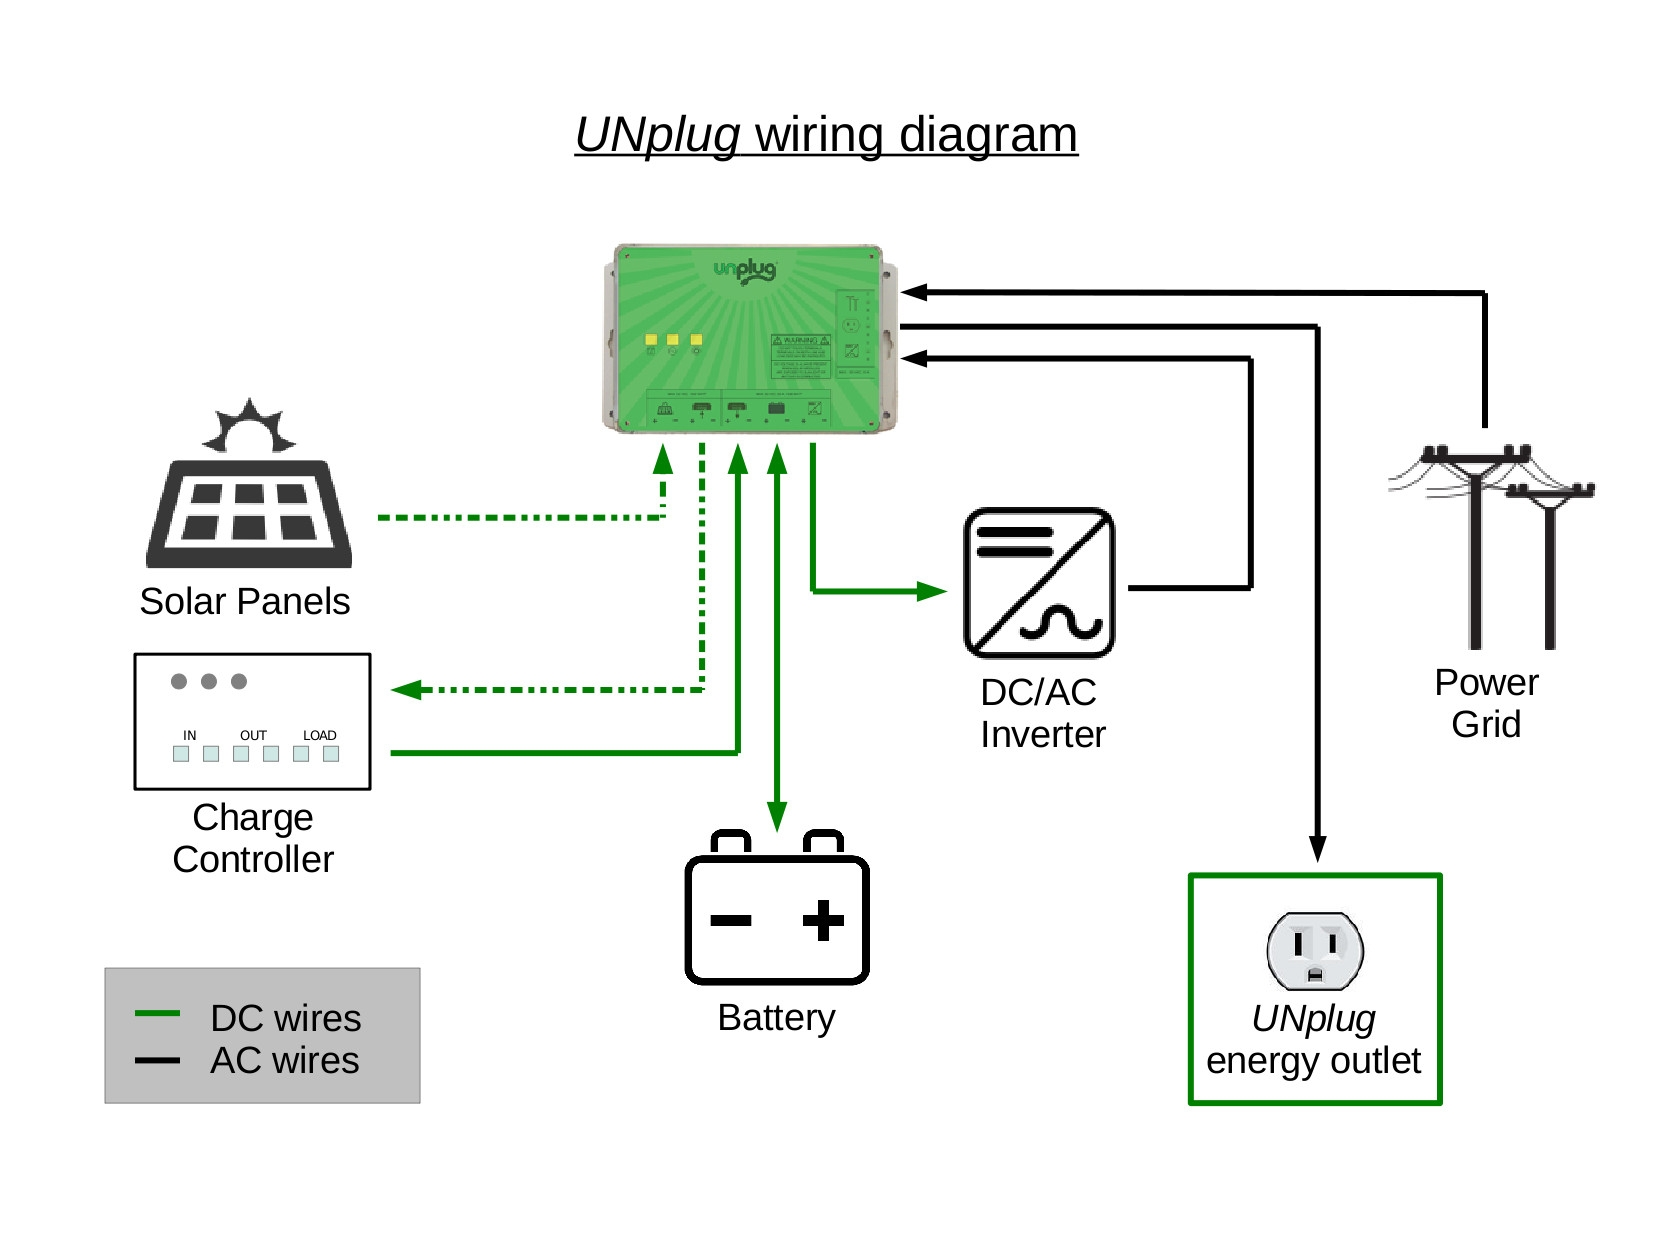 ups bypass switch wiring diagram Collection-Wiring Diagram for Ups bypass Switch New Fine Ups Wiring Diagram Circuit Gift Electrical Diagram Ideas 8-p